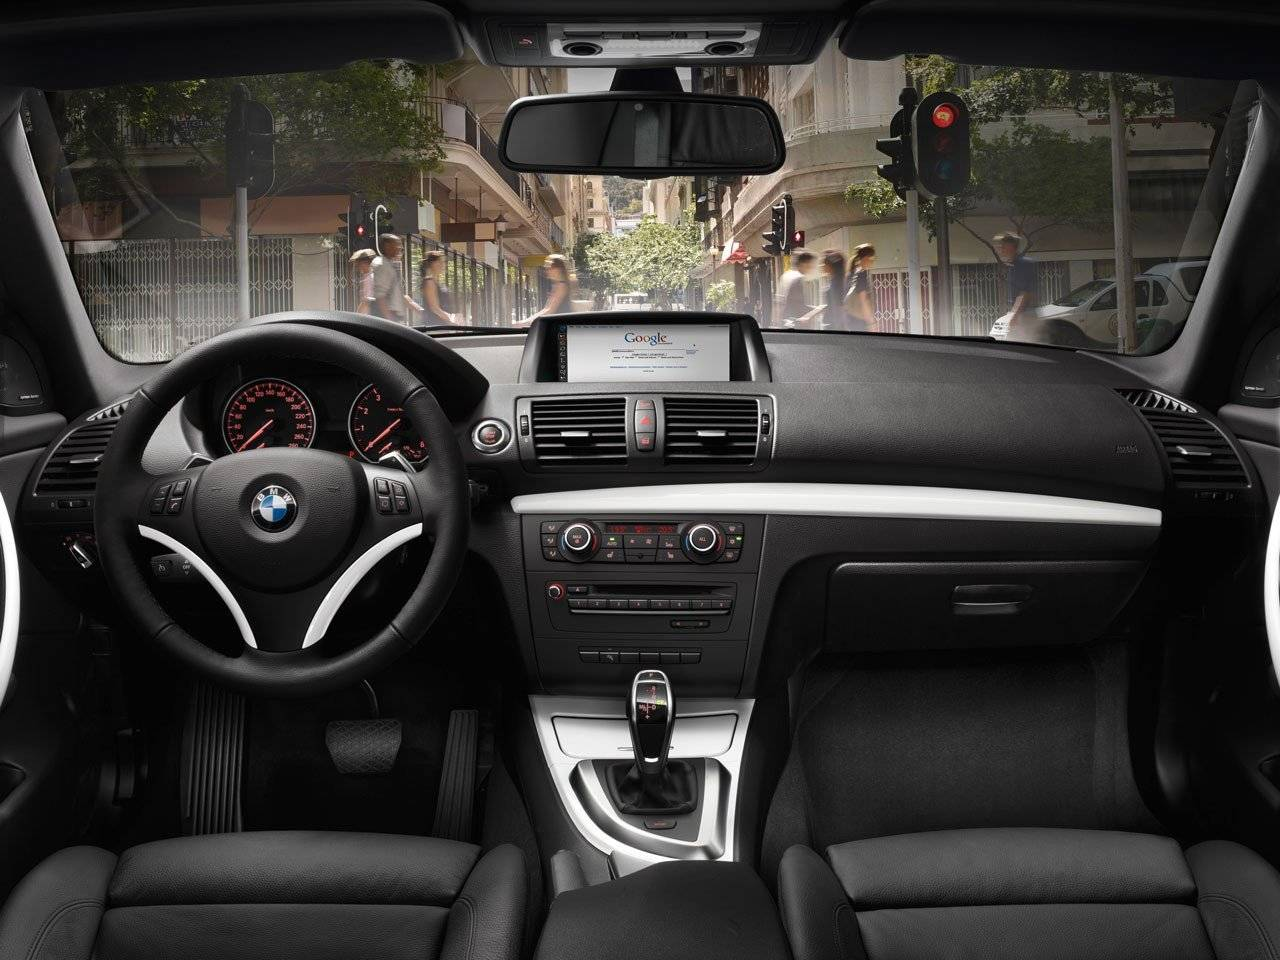 facelift voor bmw 1 serie coup cabrio autonieuws. Black Bedroom Furniture Sets. Home Design Ideas